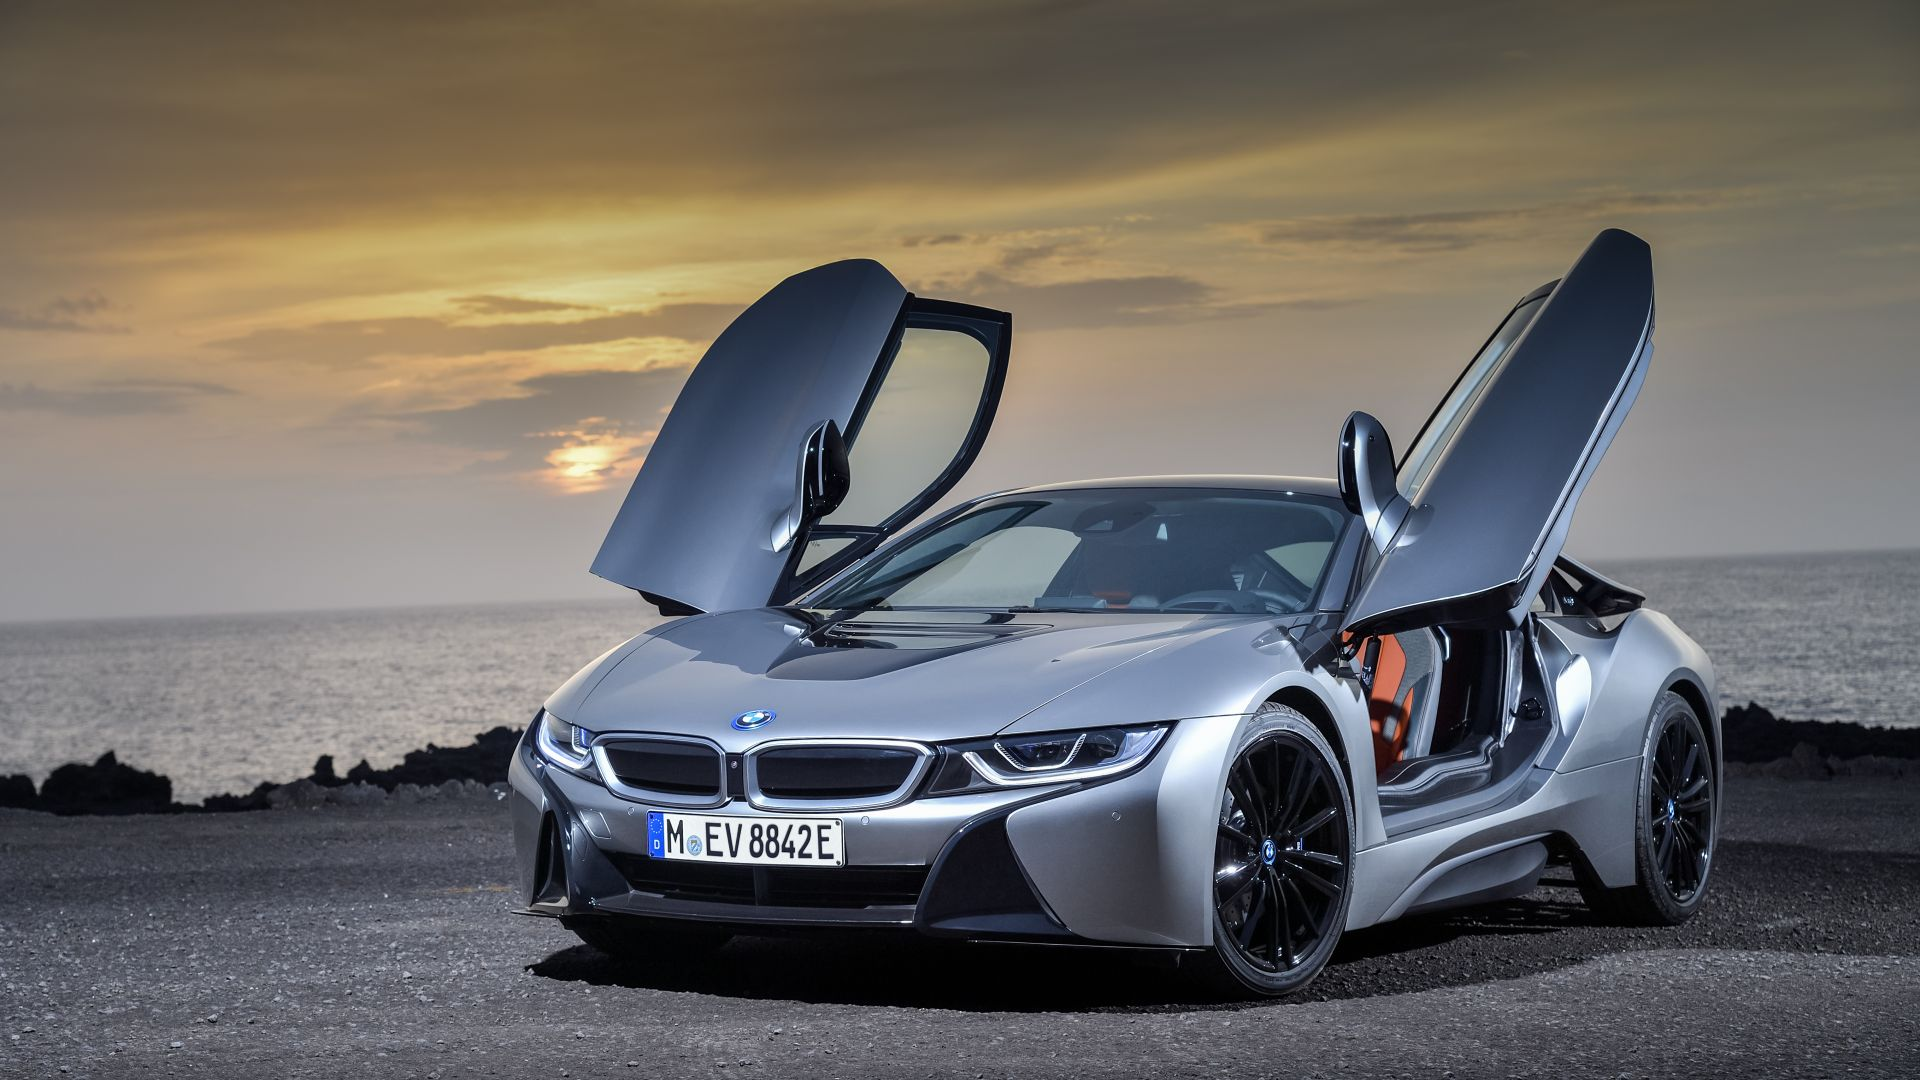 БМВ, BMW i8 Roadster, 2018 Cars, 5k (horizontal)